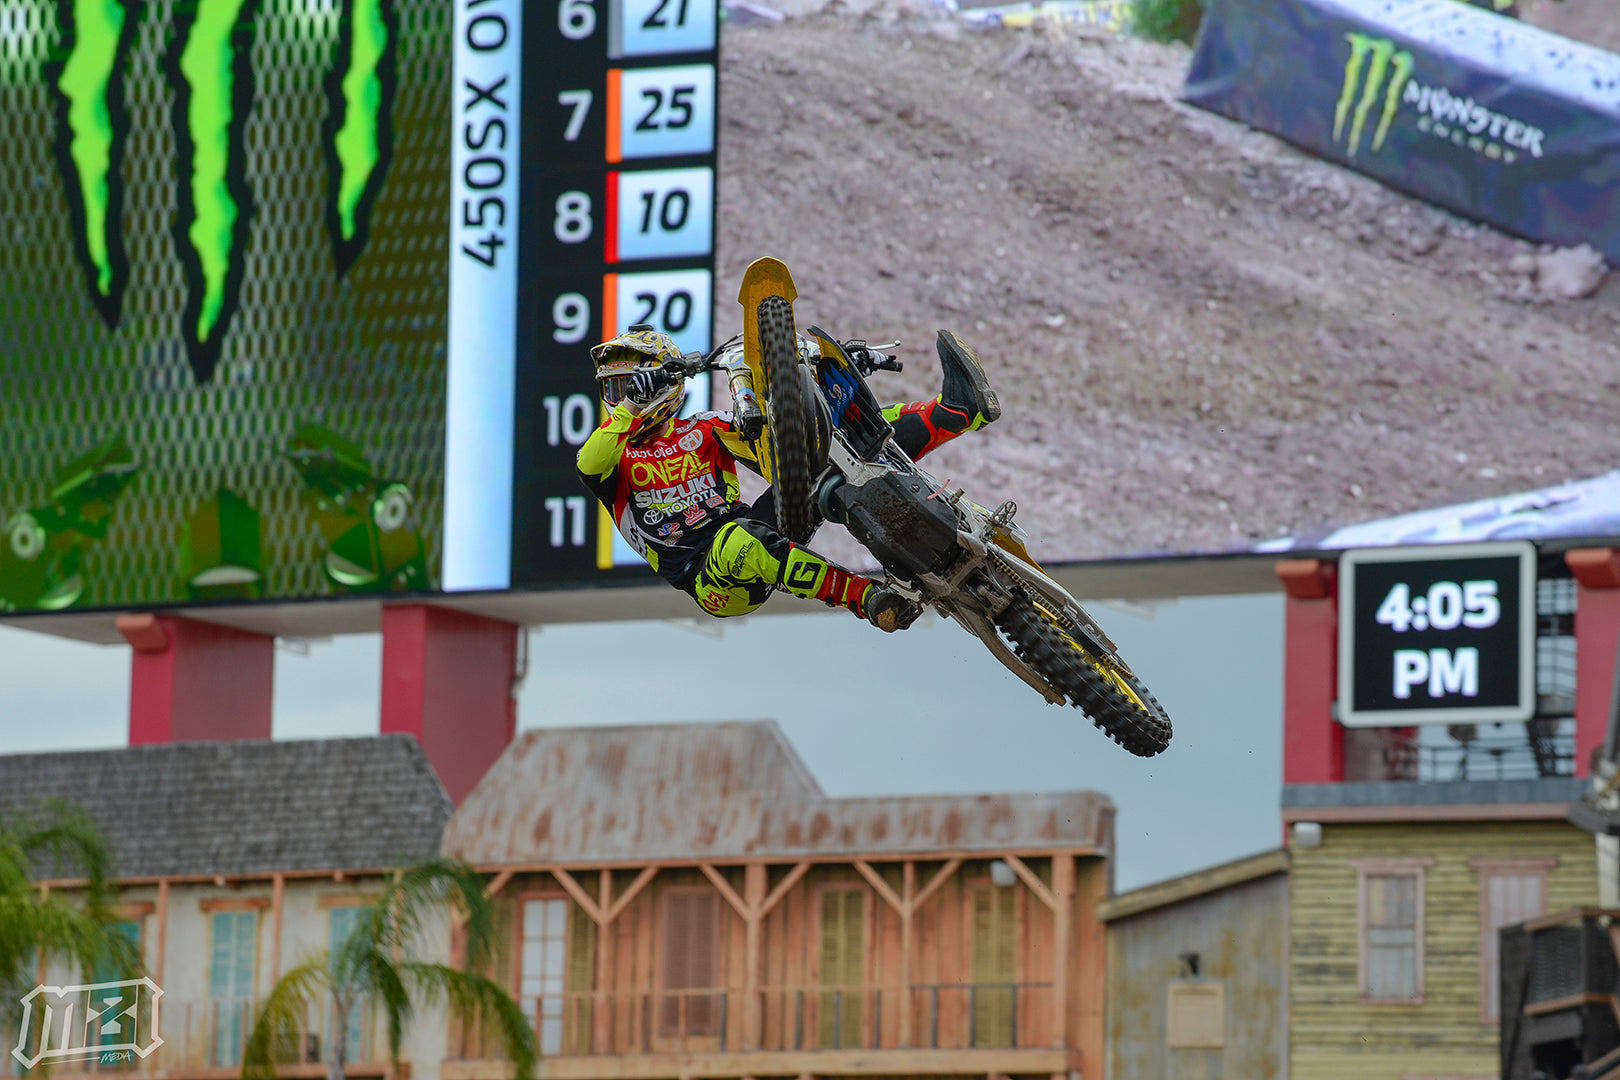 Justin Hill Tampa Supercross